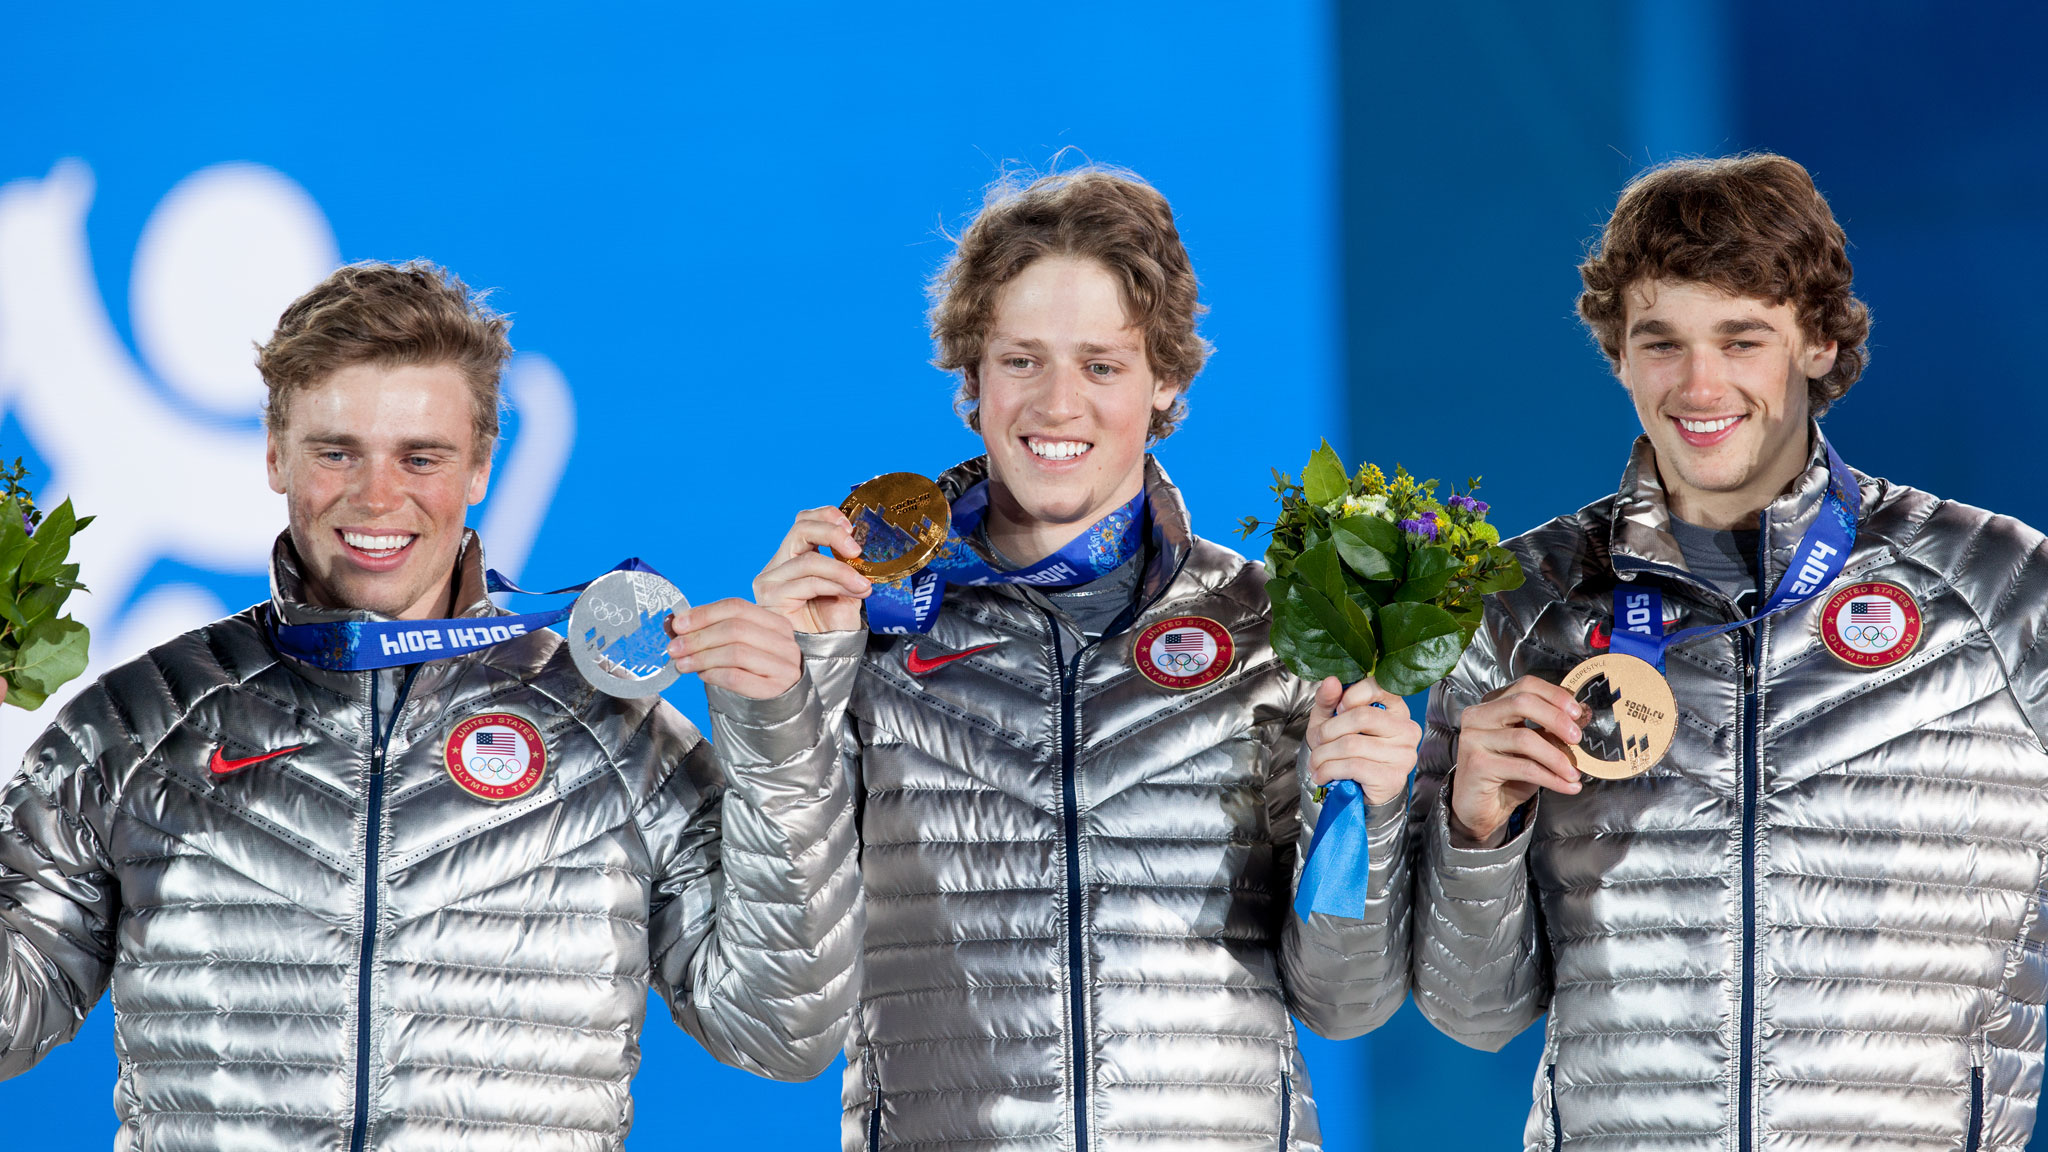 Americans Gus Kenworthy, Joss Christensen and Nick Goepper, who swept the slopestyle podium in Sochi.